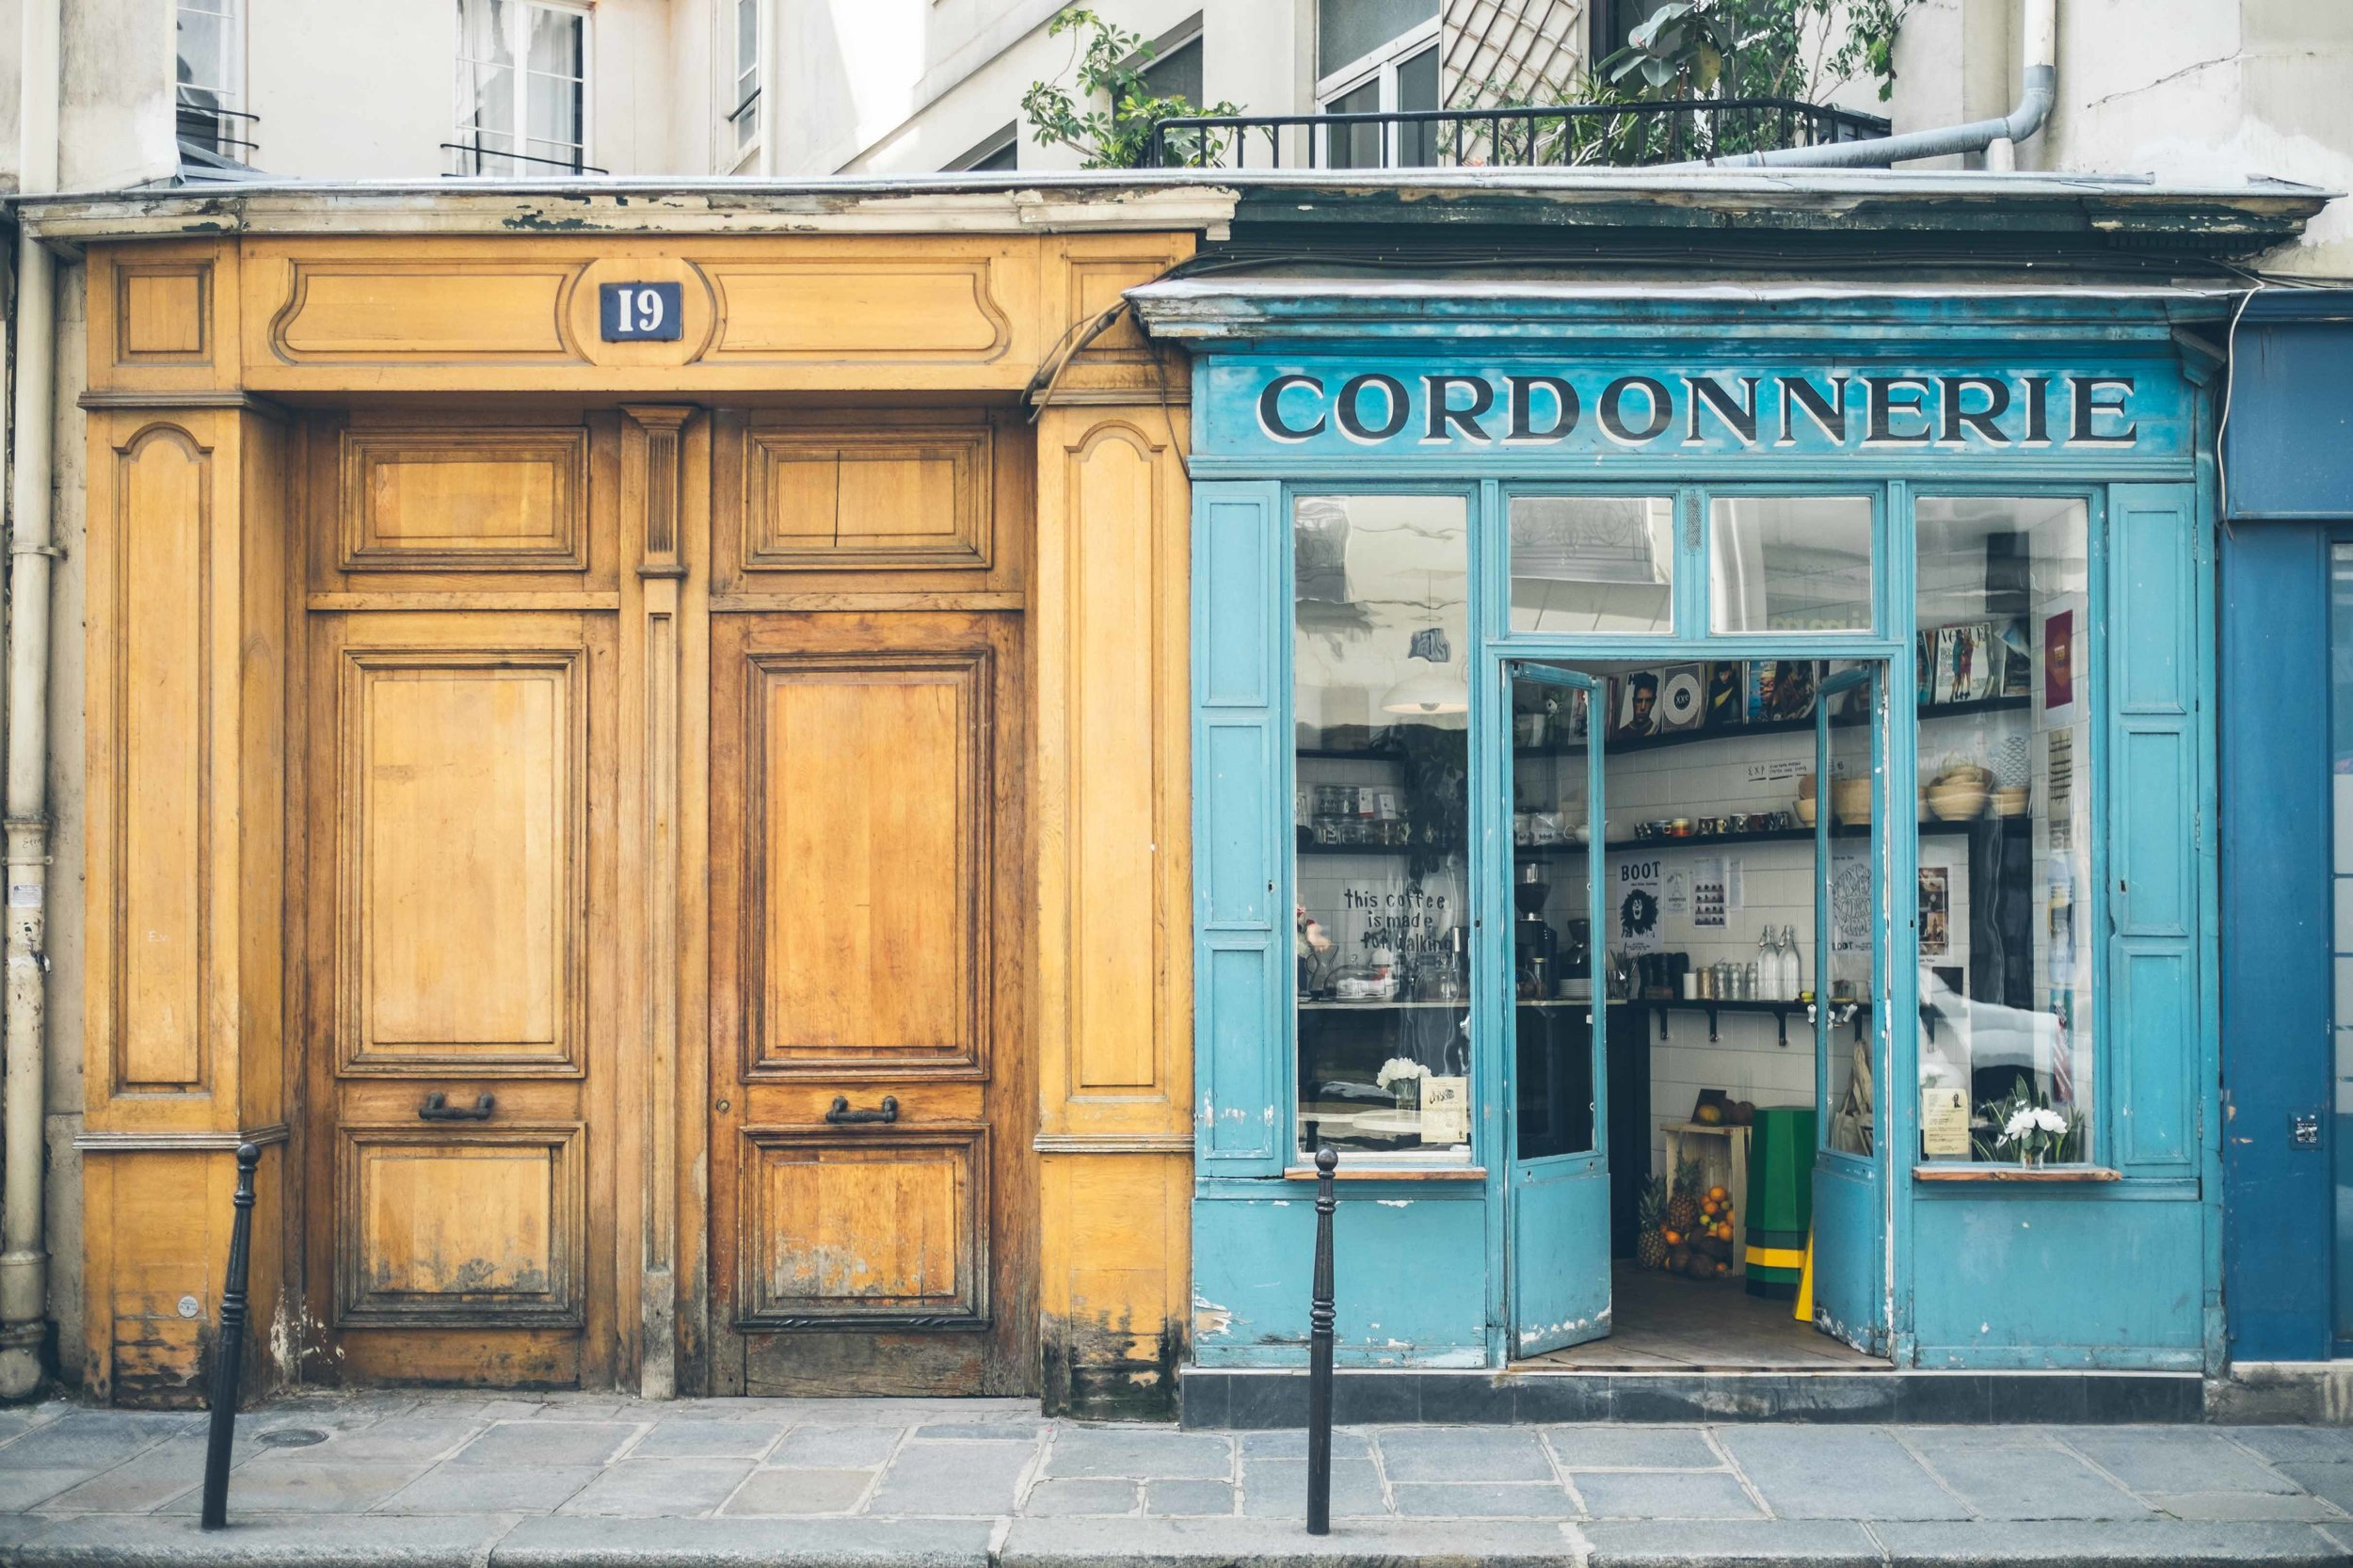 As huge coffee lovers we were delighted to stumble across Boot Cafe in Le Marais, one of Paris' very few boutique cafes